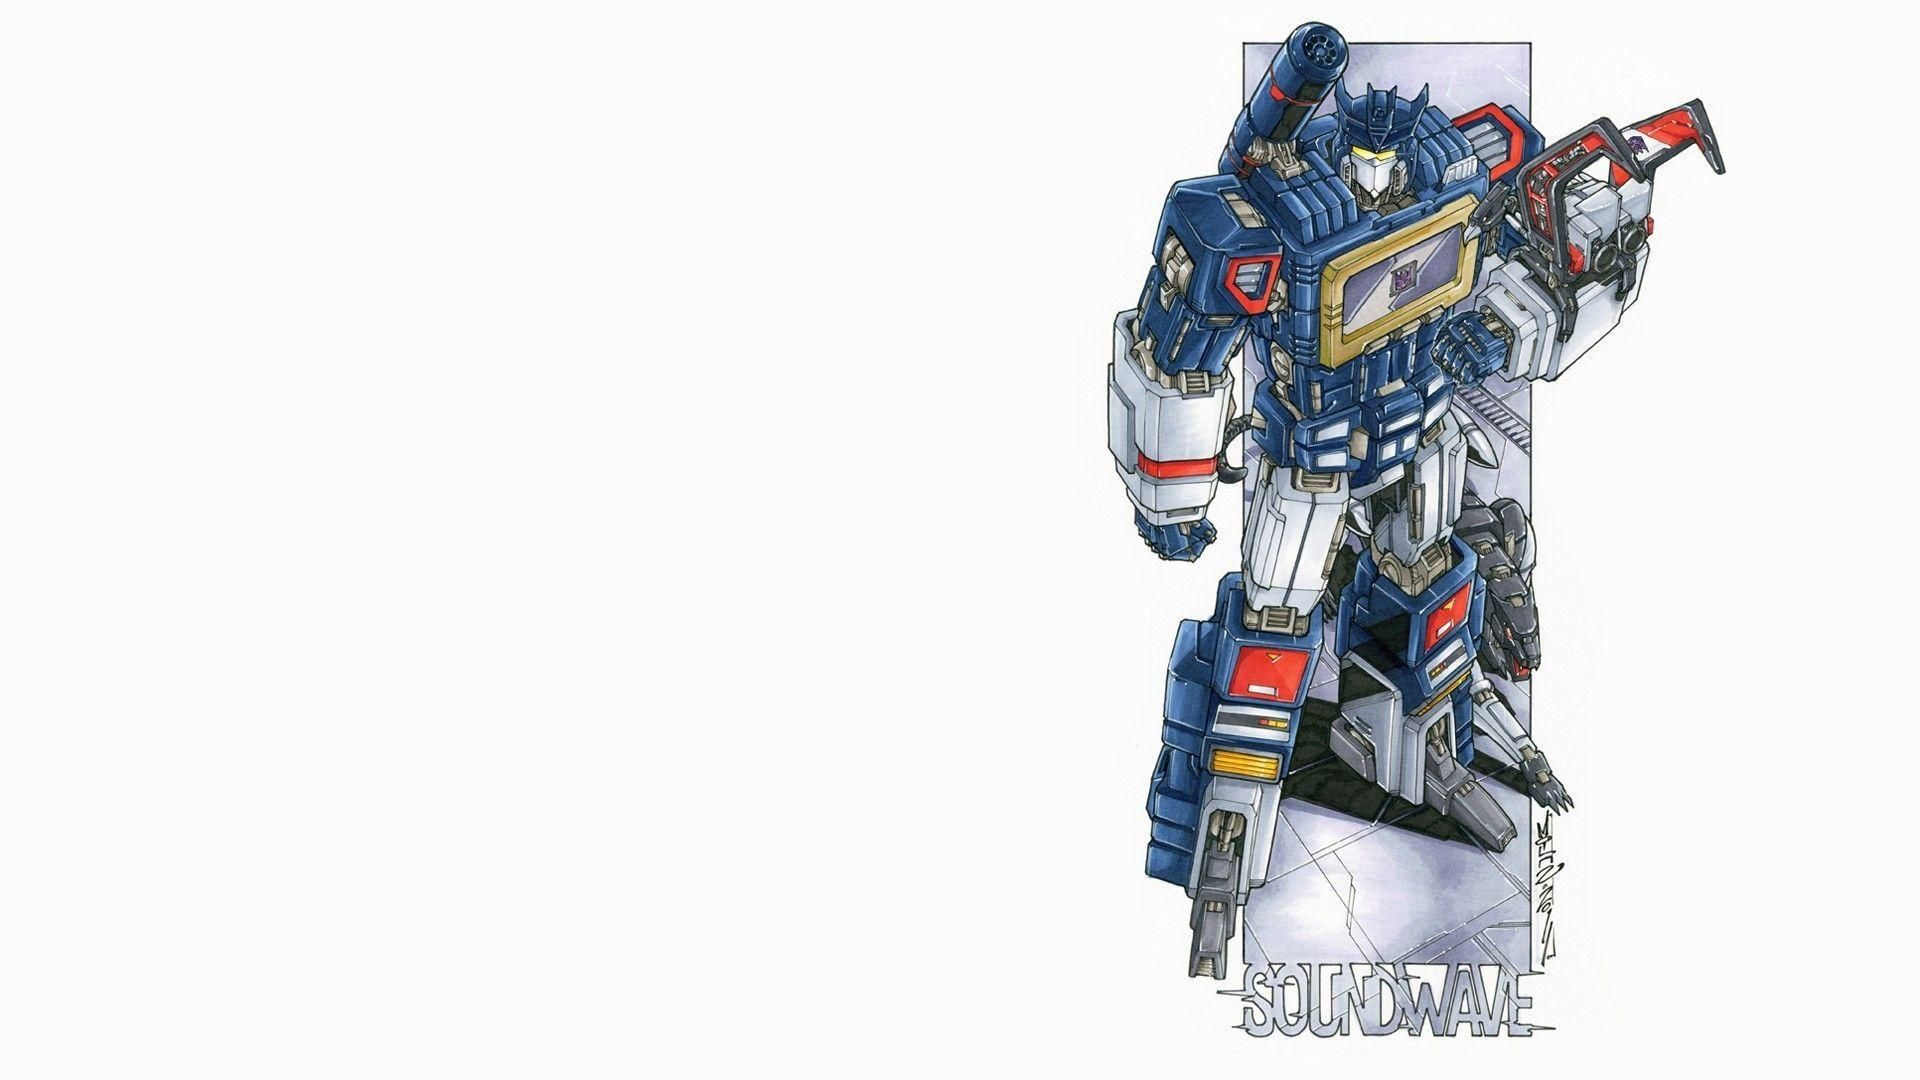 Soundwave Wallpapers Wallpaper Cave Sound waves, Cool